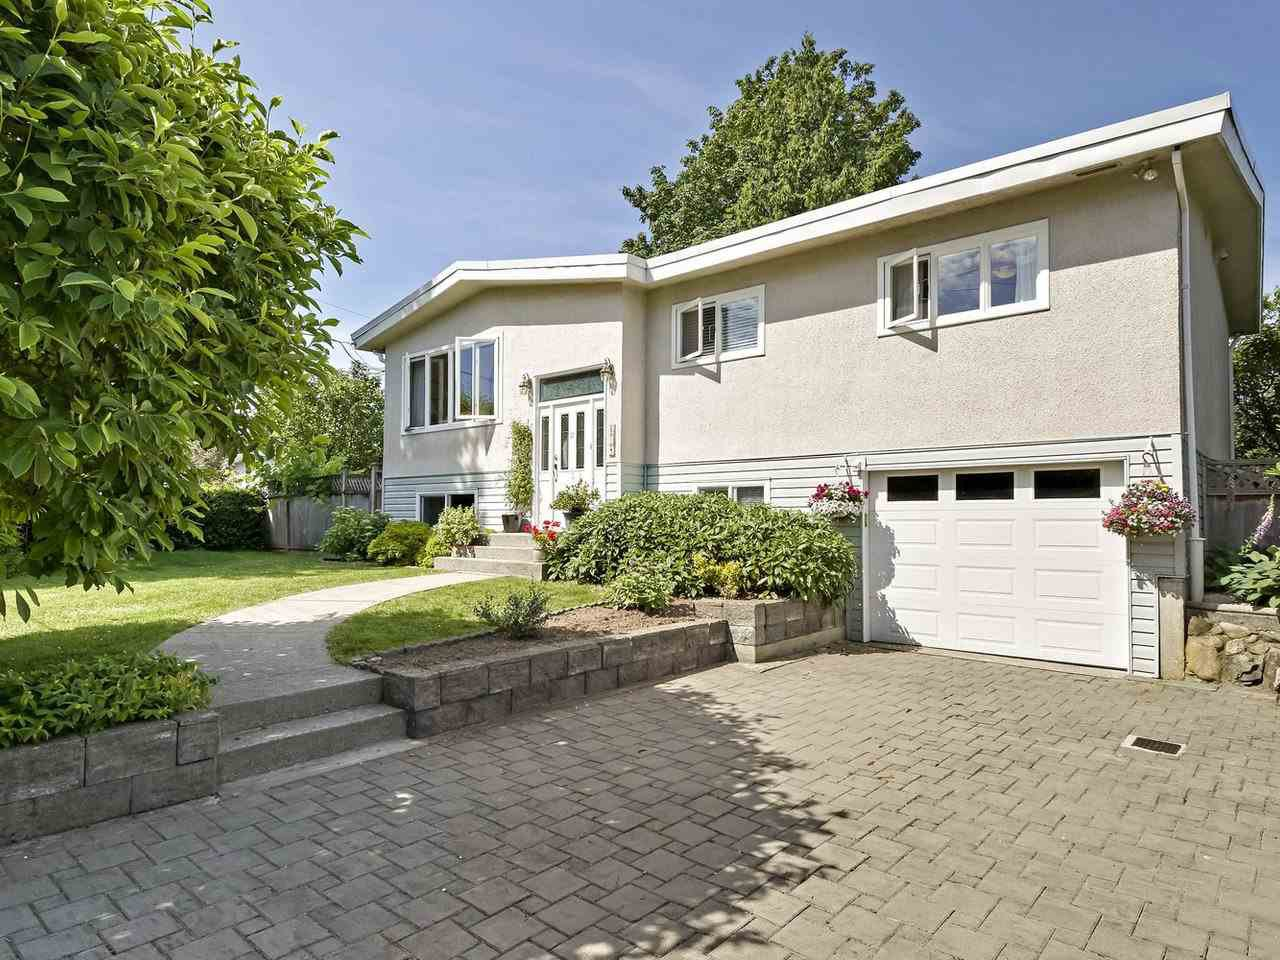 Photo 1: Photos: 814 LEVIS Street in Coquitlam: Harbour Place House for sale : MLS®# R2381563